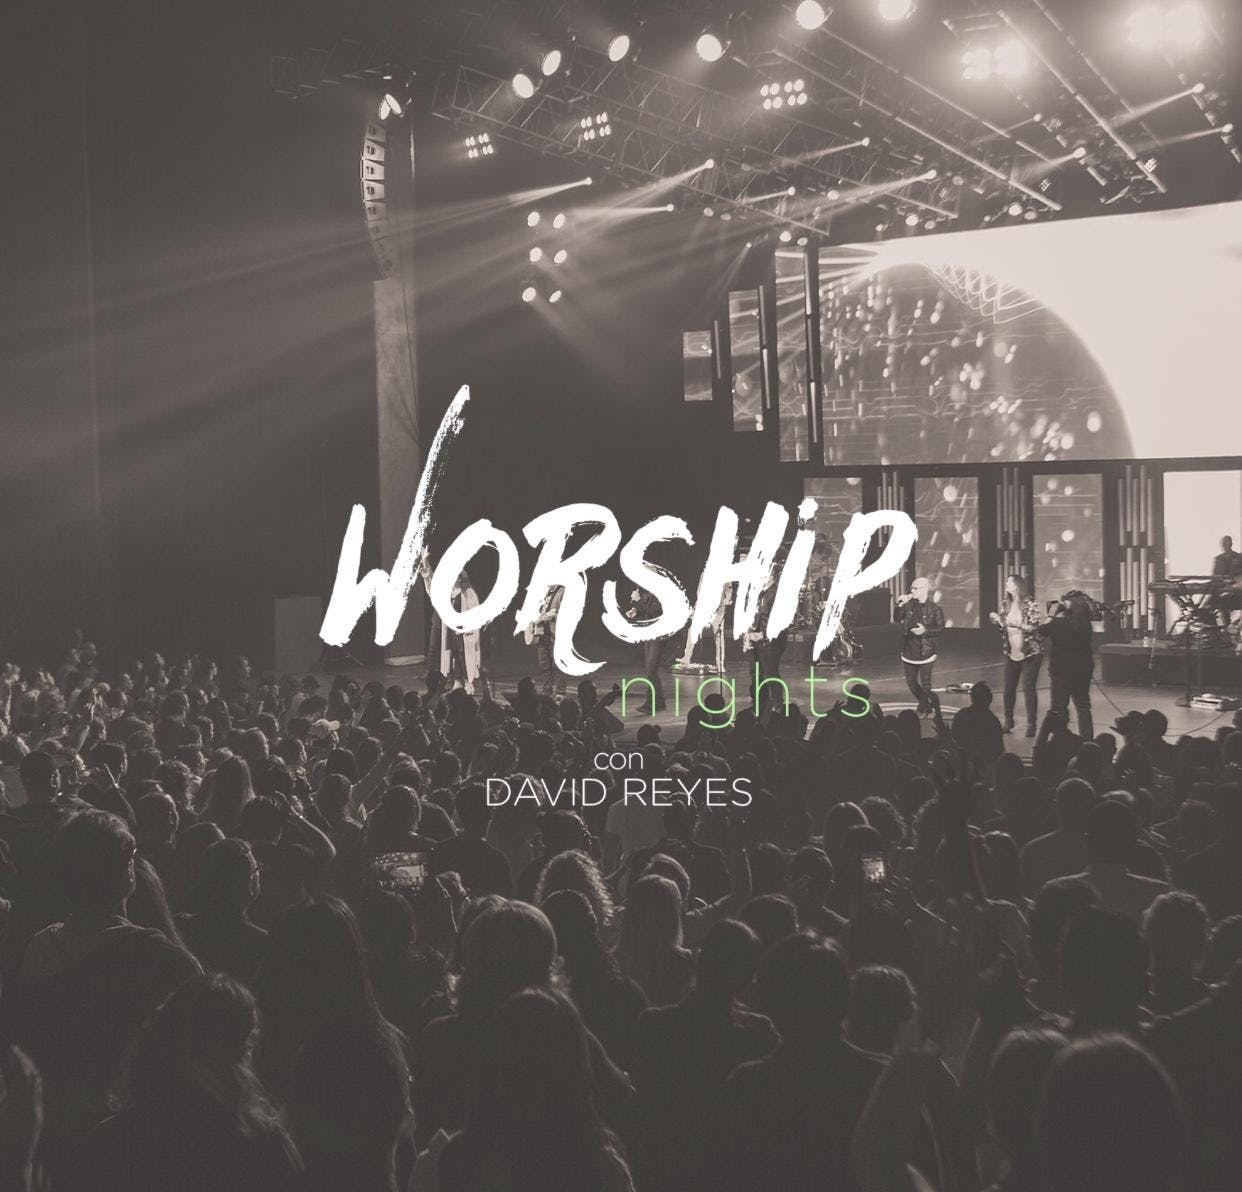 Worship Night con David Reyes | SAN JOSE